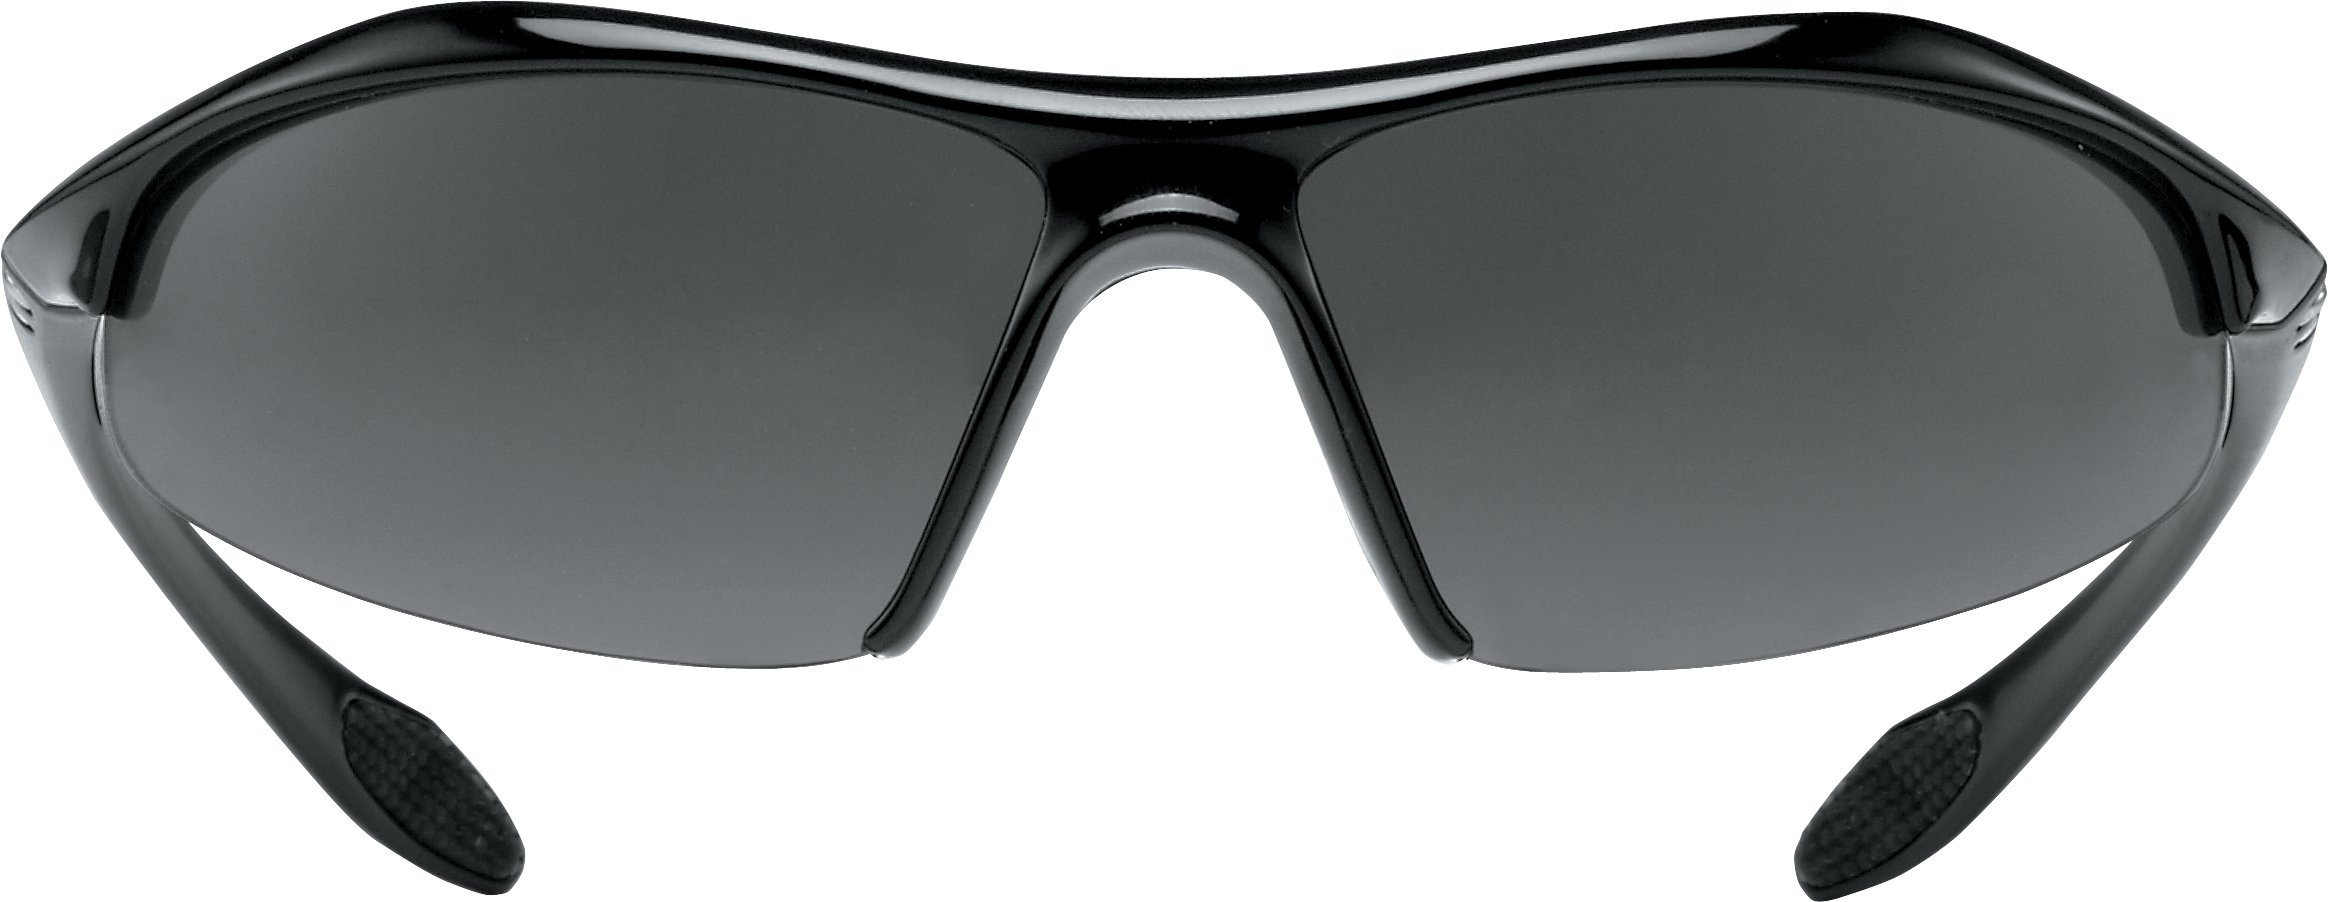 UA Zone Sunglasses, Shiny Black